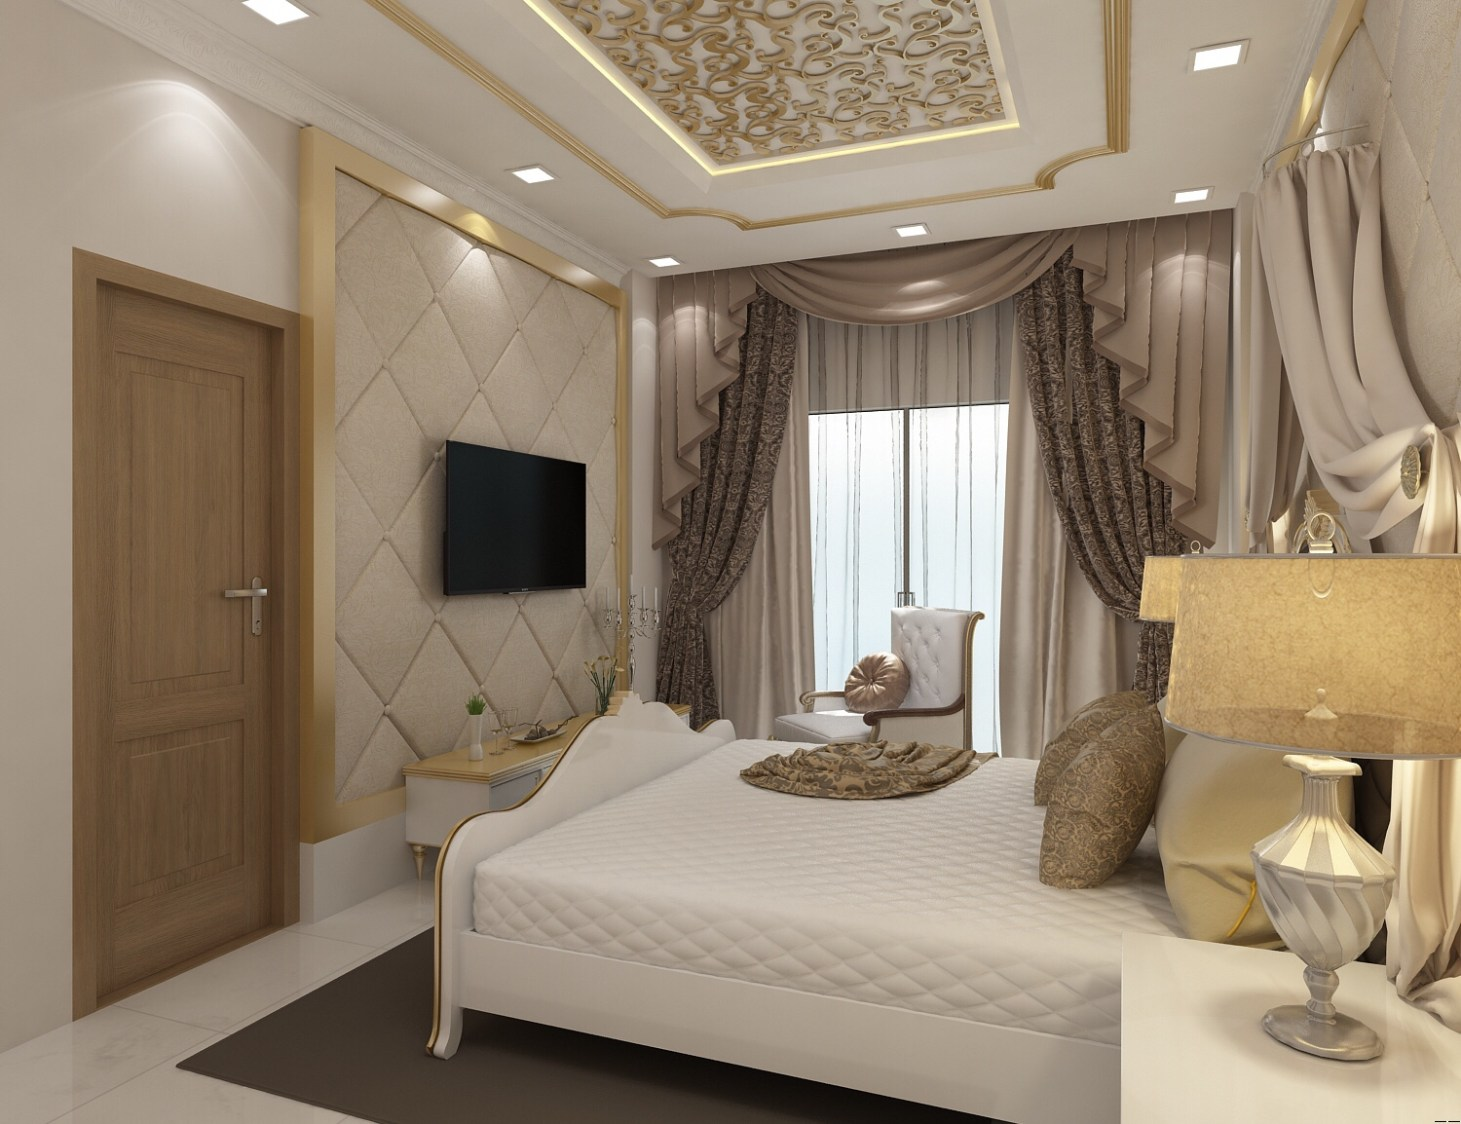 Royal Bedroom With Touch Of  Gold And White by setu.patel Bedroom | Interior Design Photos & Ideas